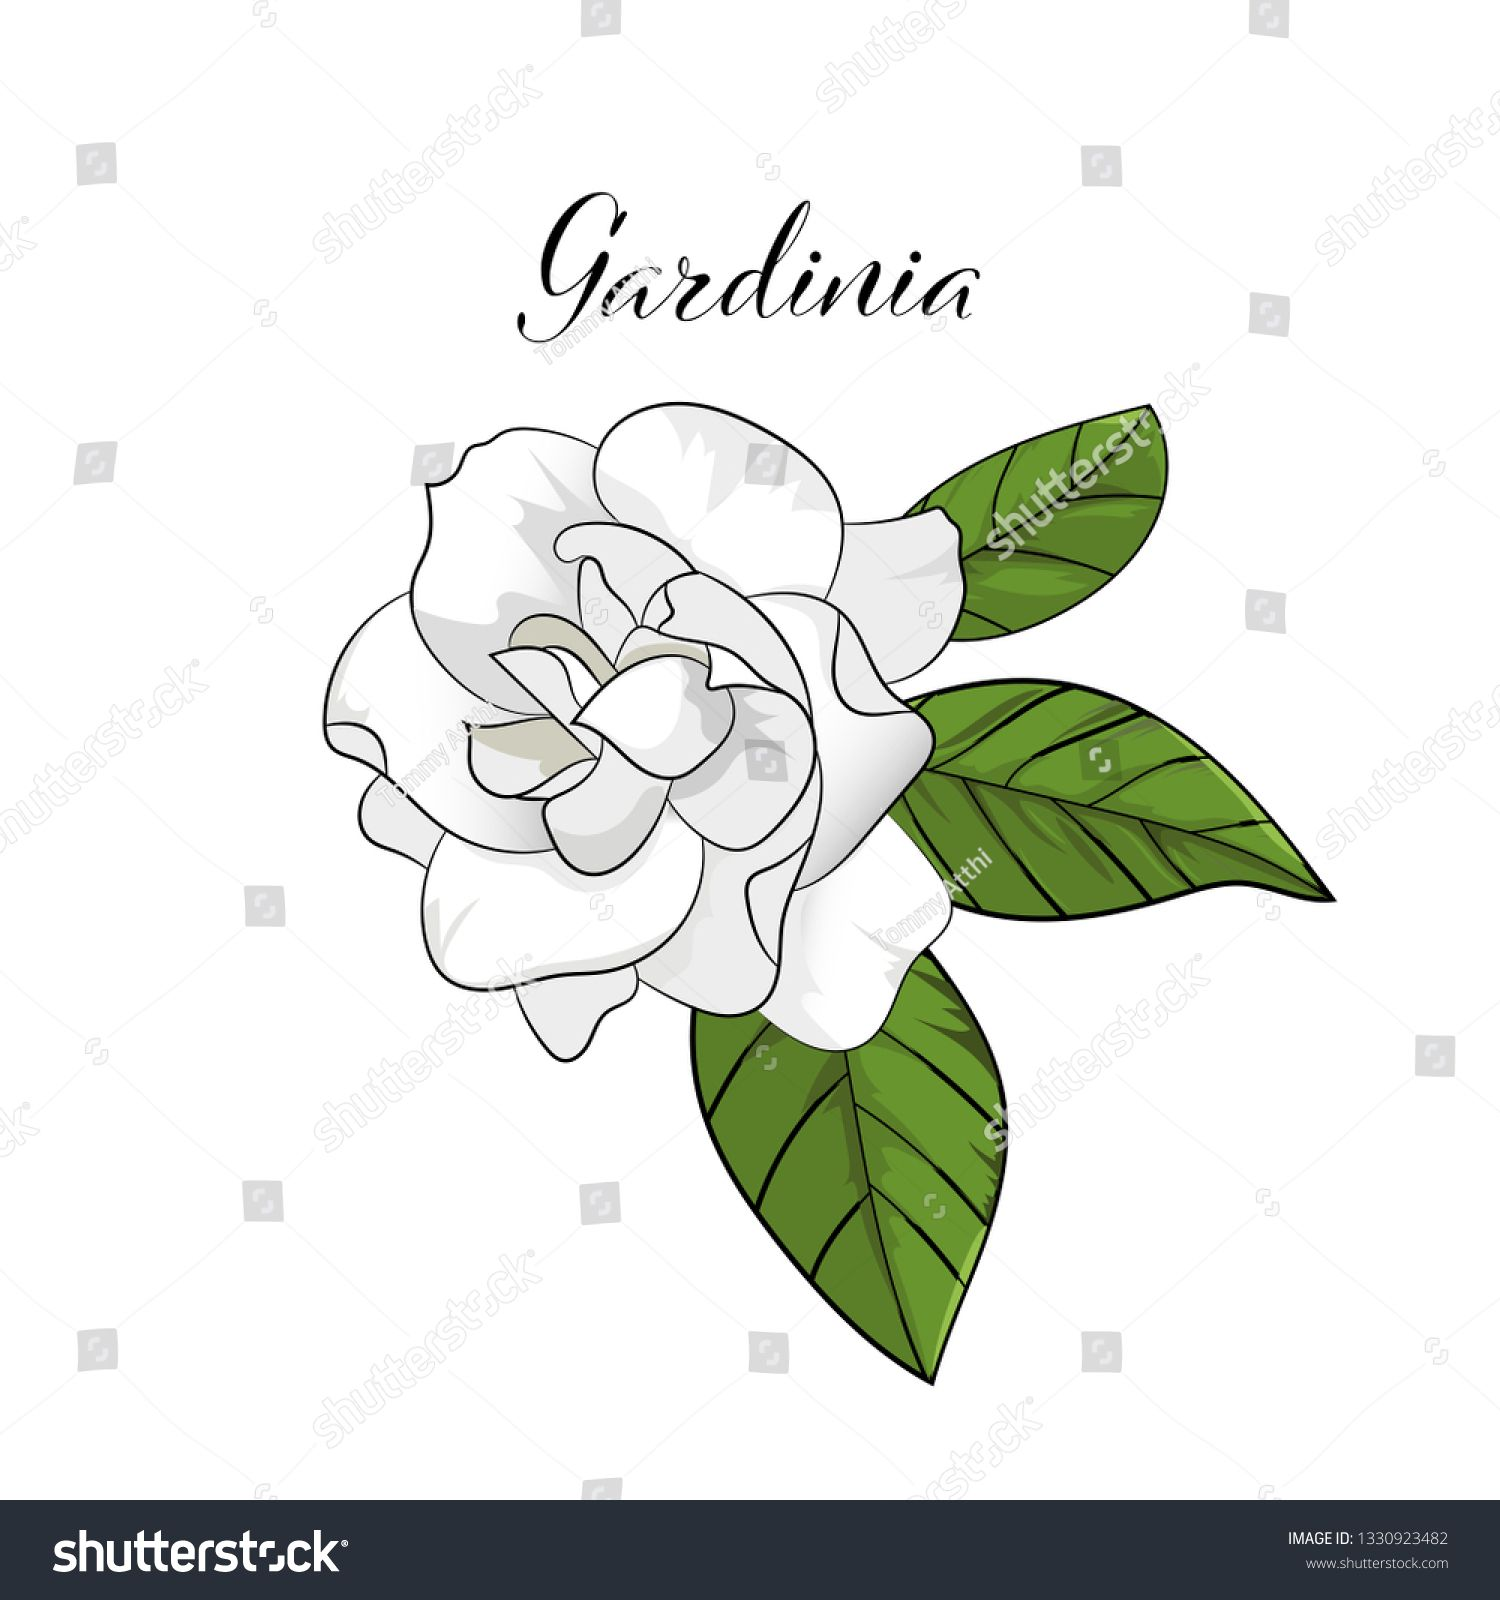 Hand Drawn Gardenia Flower Element Vector Flower Drawing How To Draw Hands Pawprint Tattoo